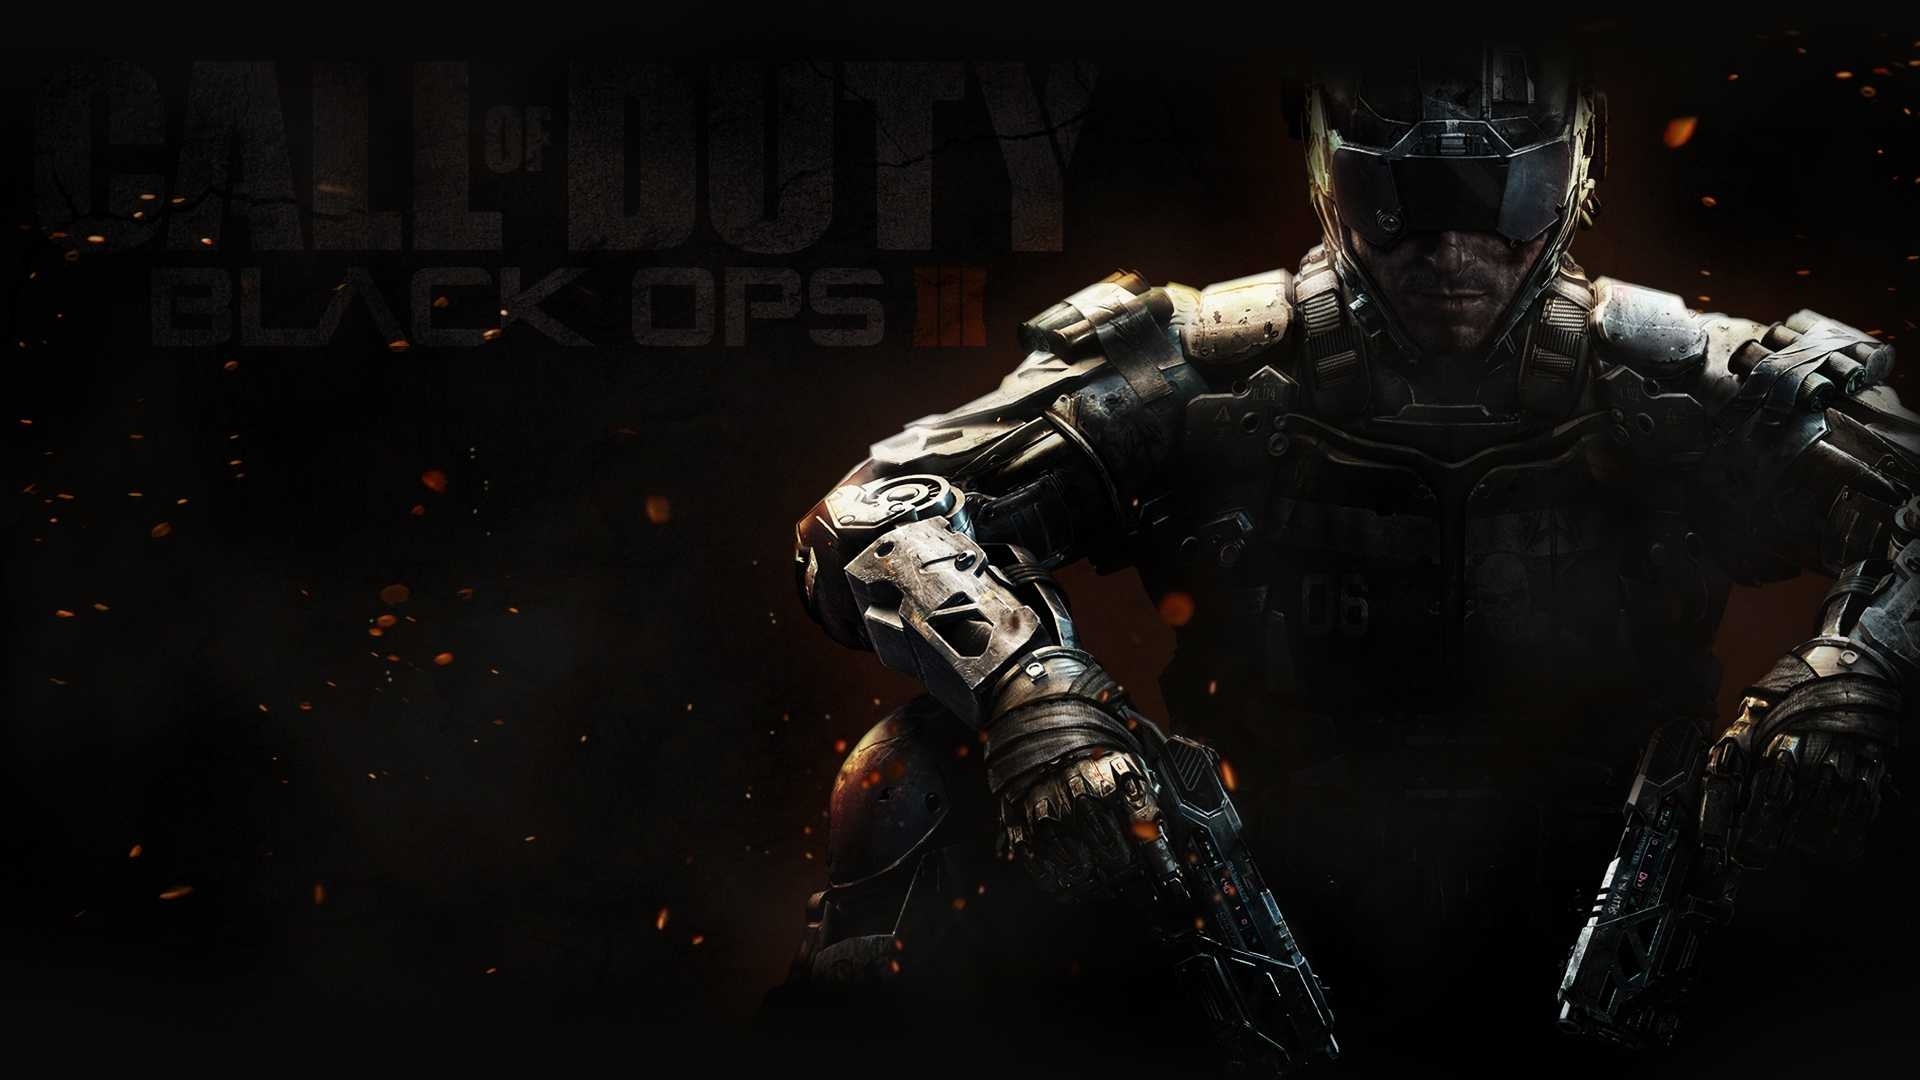 Black Ops 3 Collection With Call Of Duty Calendar Pictures 89uj